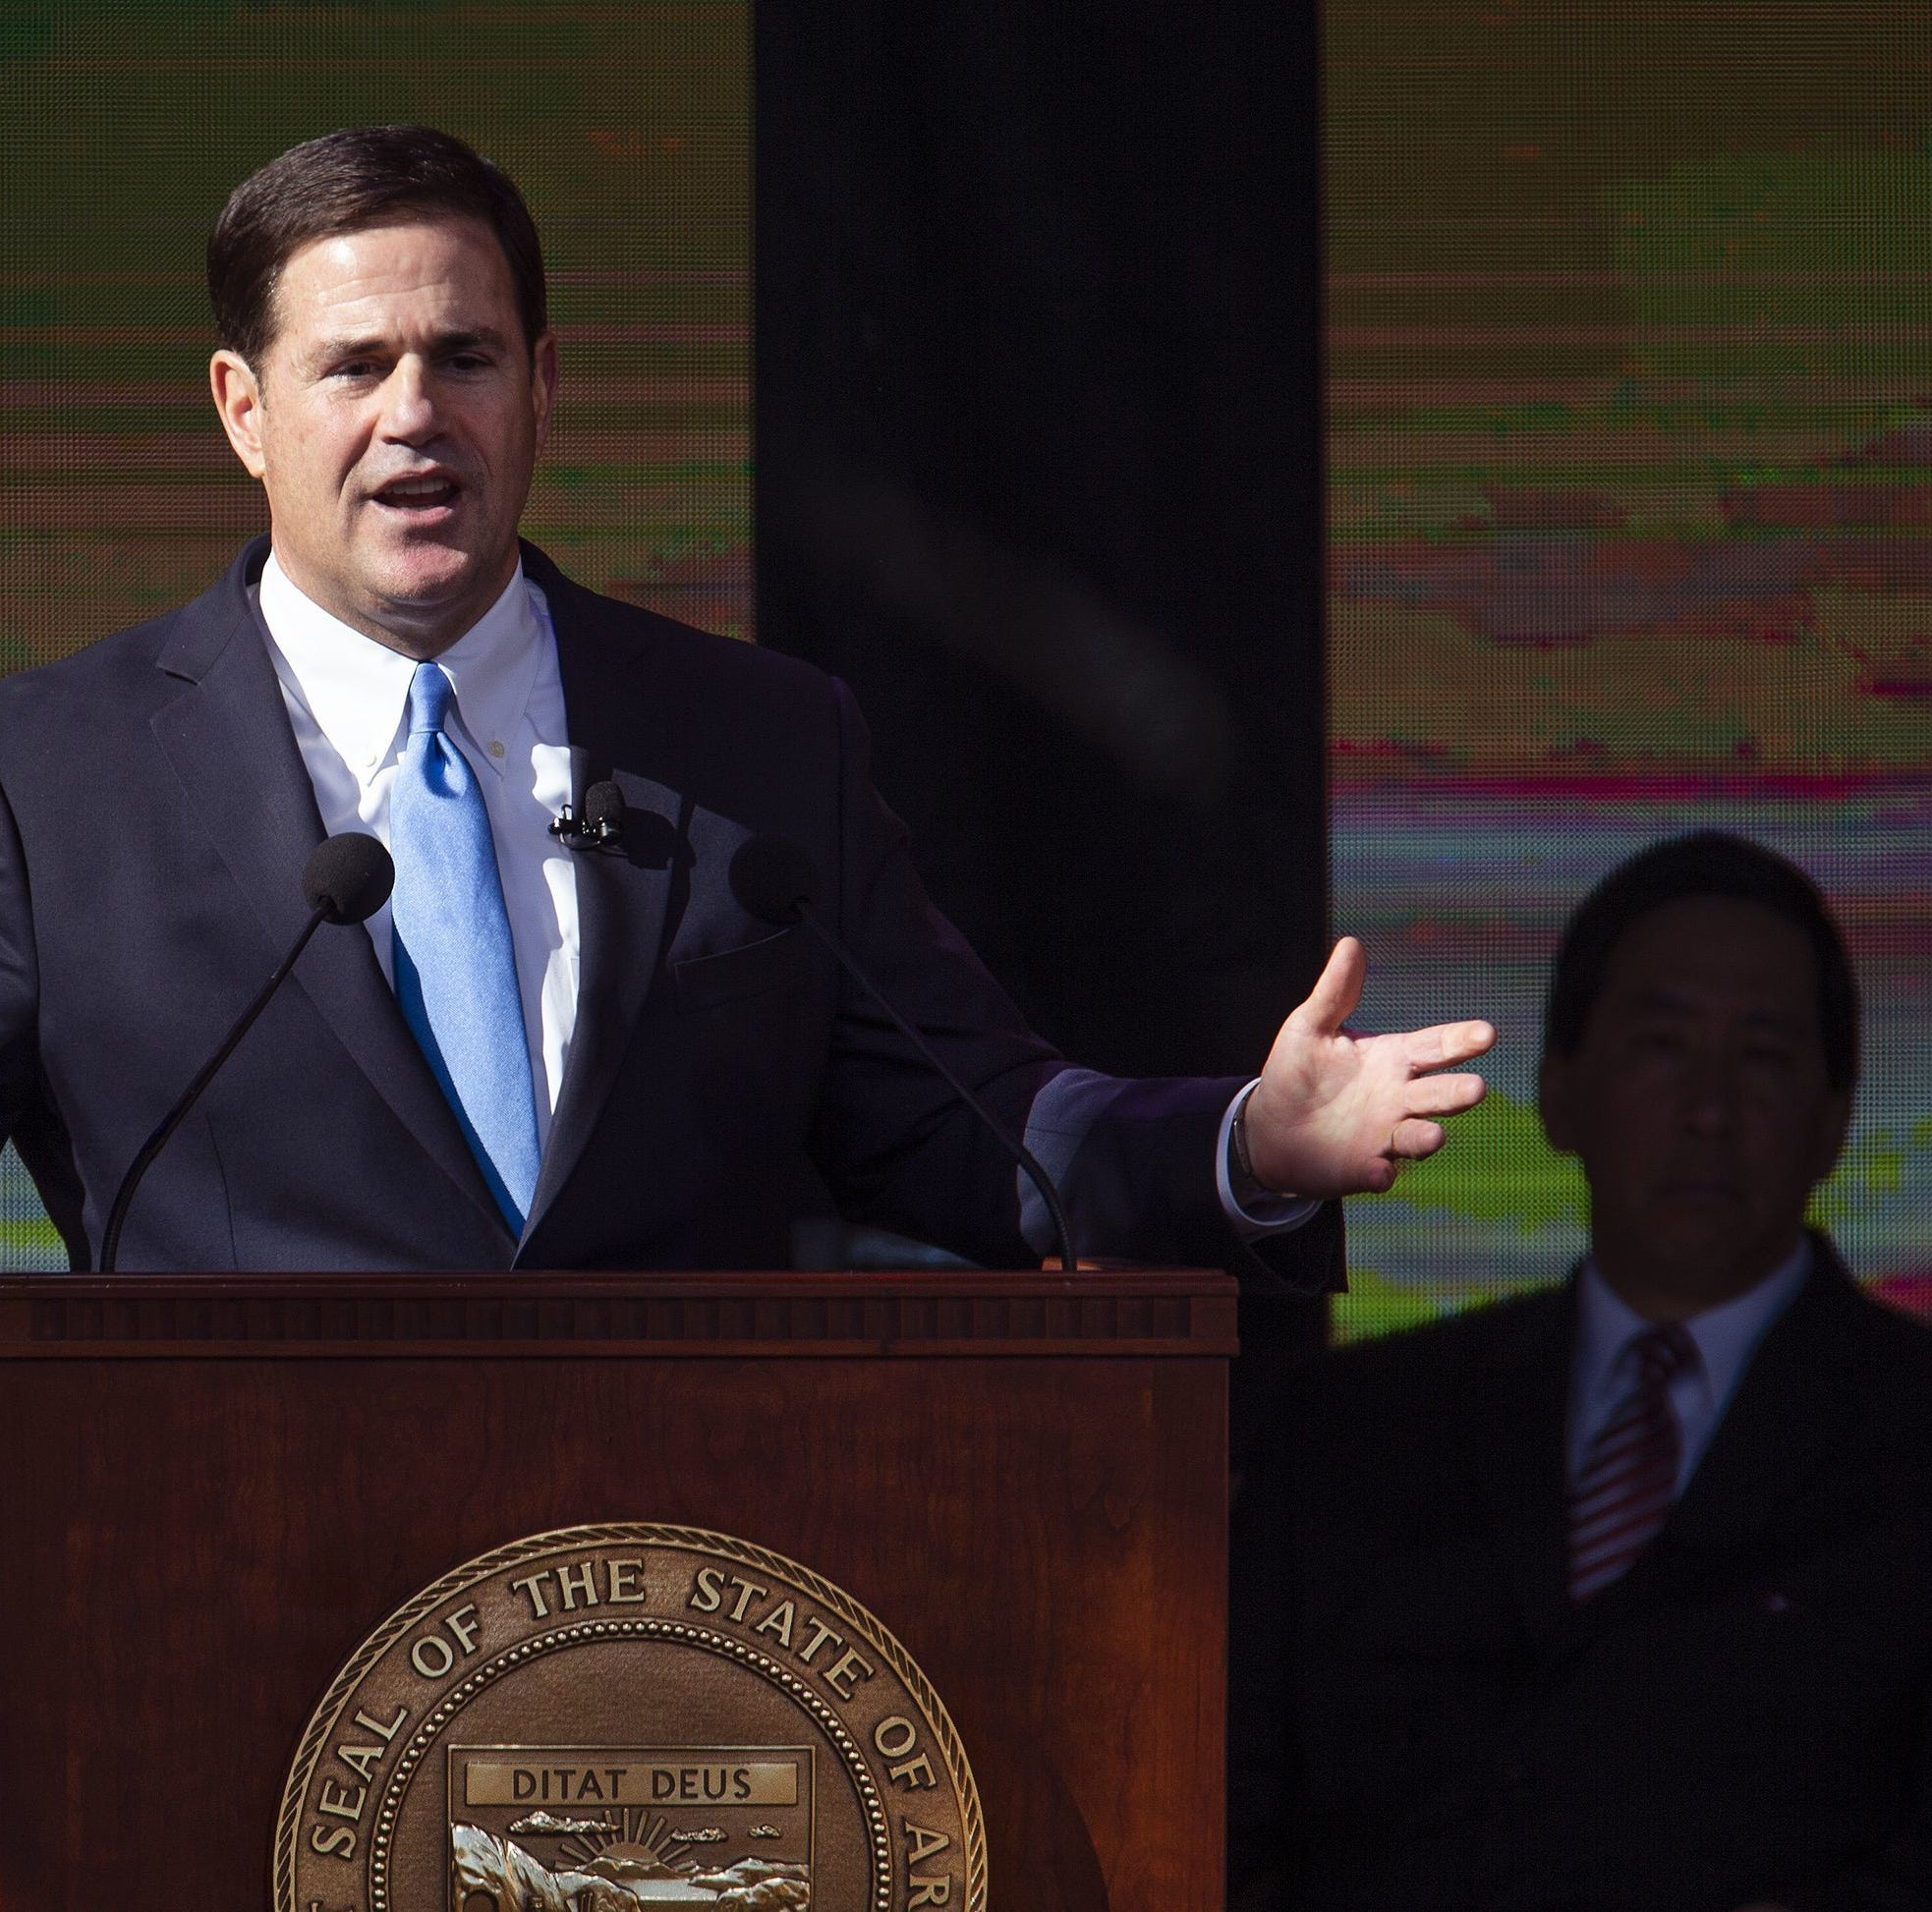 Exposing Gov. Doug Ducey's bogus plea for bipartisanship